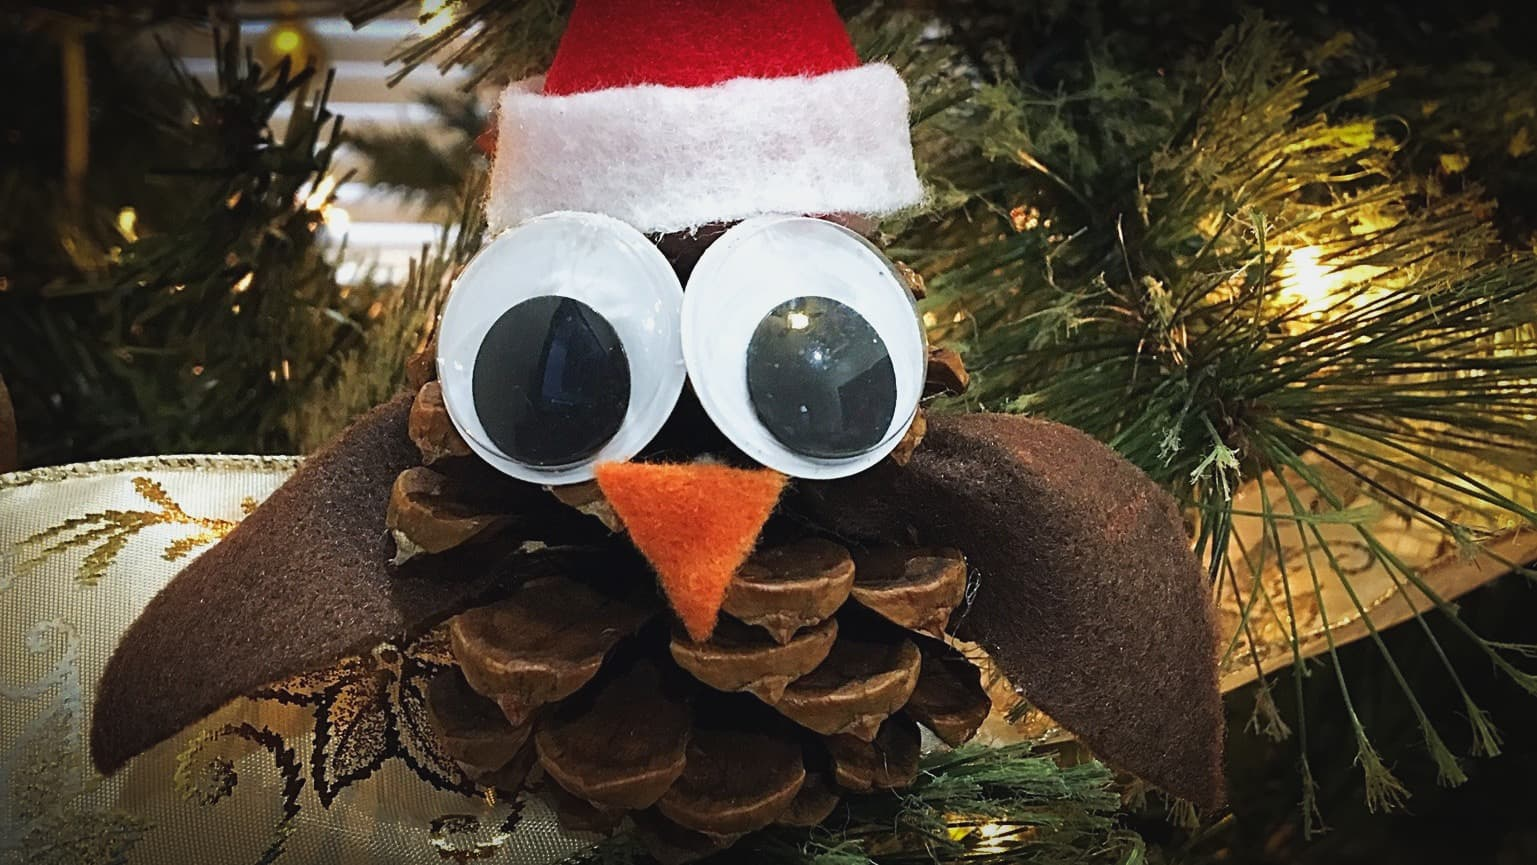 Local Boy's Handmade Ornament Makes Tree Look Like Shit